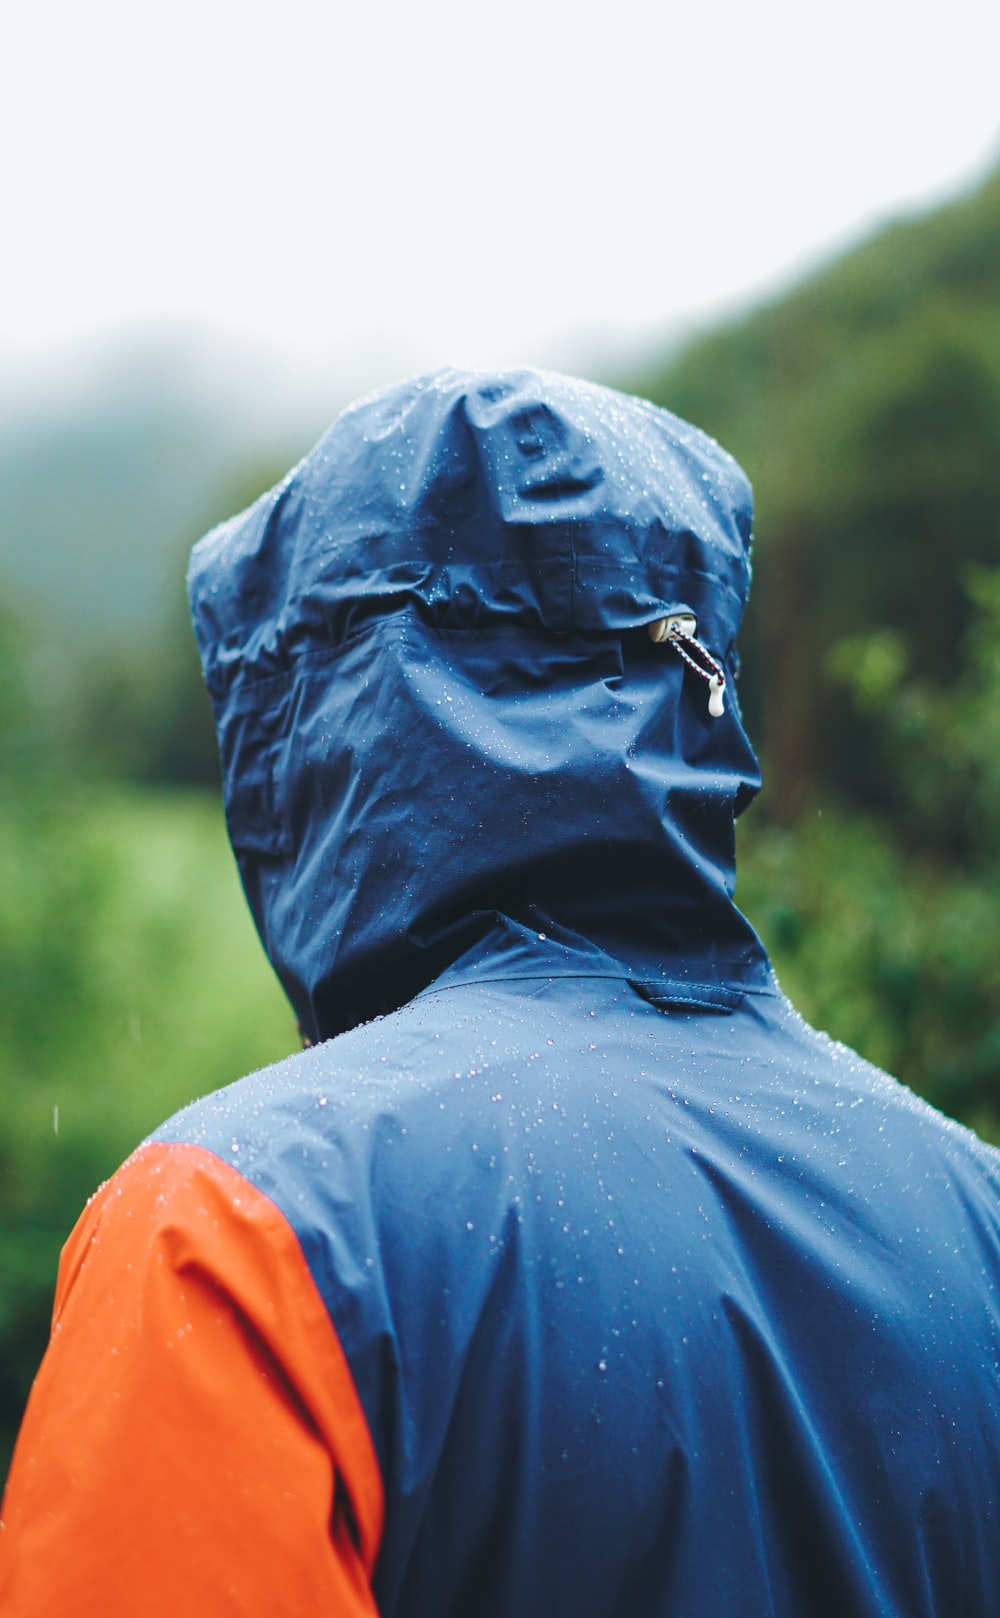 person wearing blue and orange hooded jacket standing while facing back